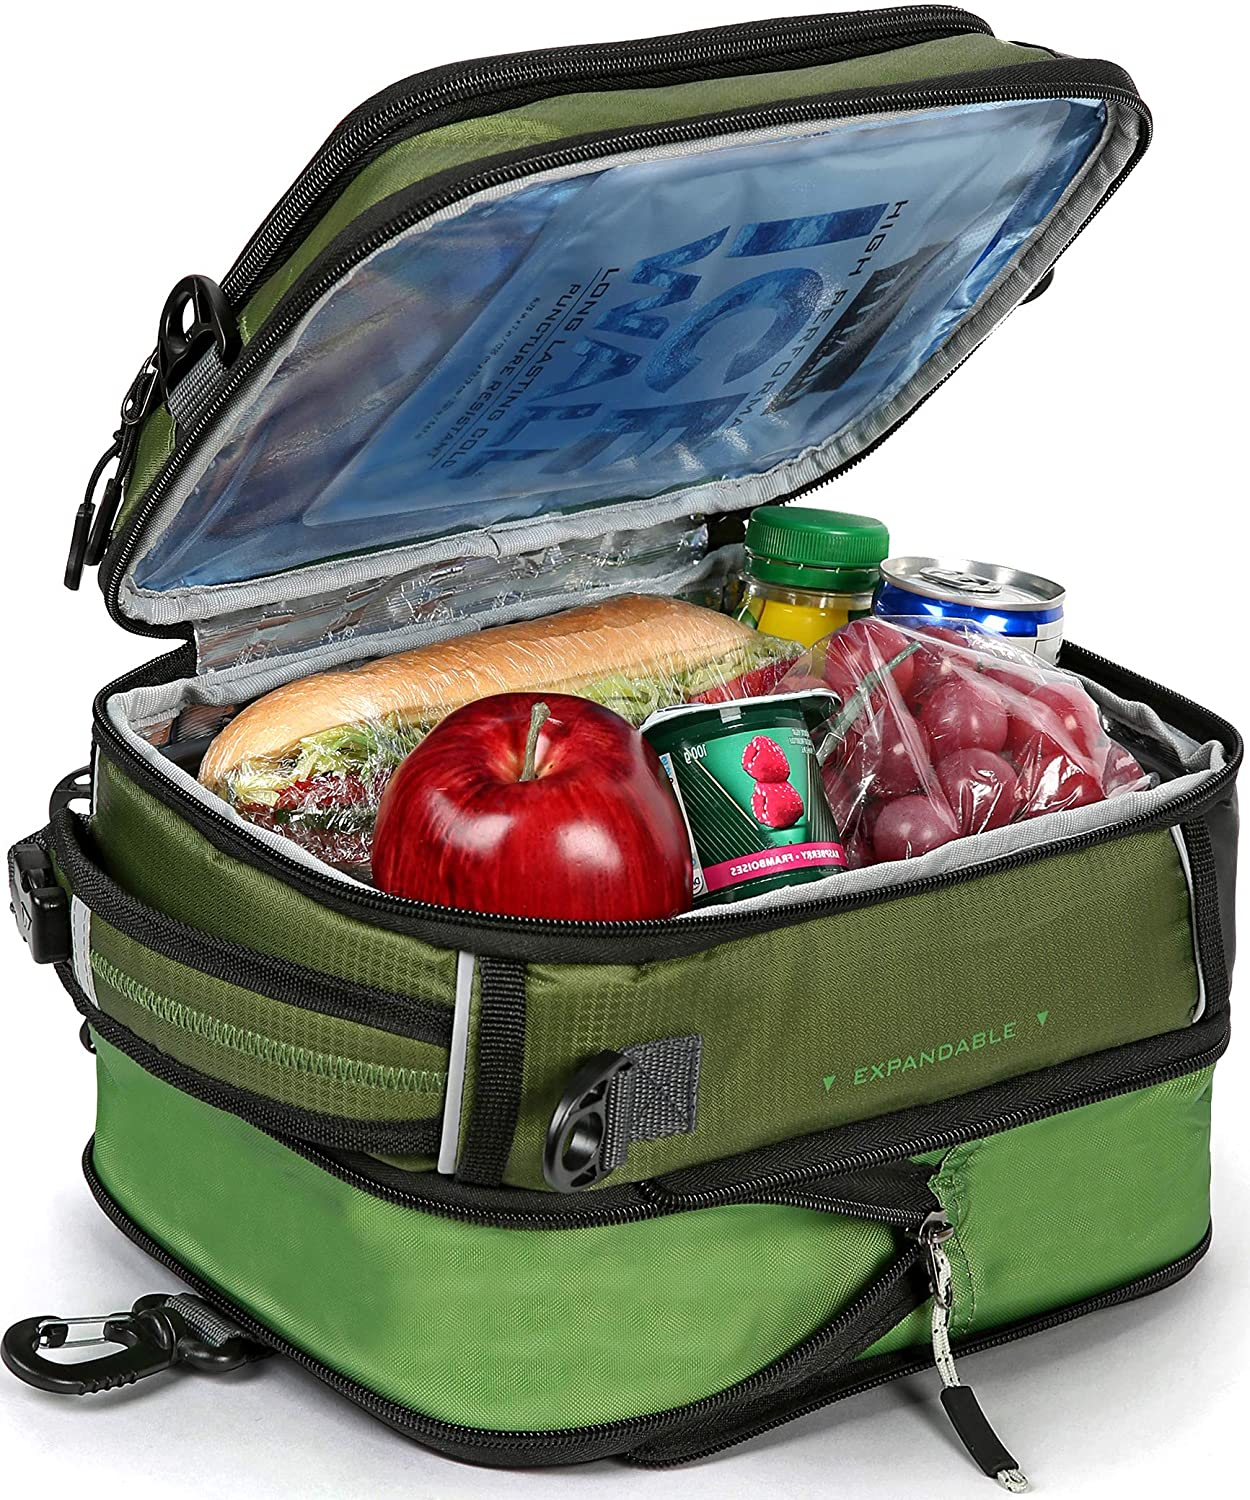 Arctic Zone lunch boxes are made with Microban, which can inhibit the growth of bacteria and viruses